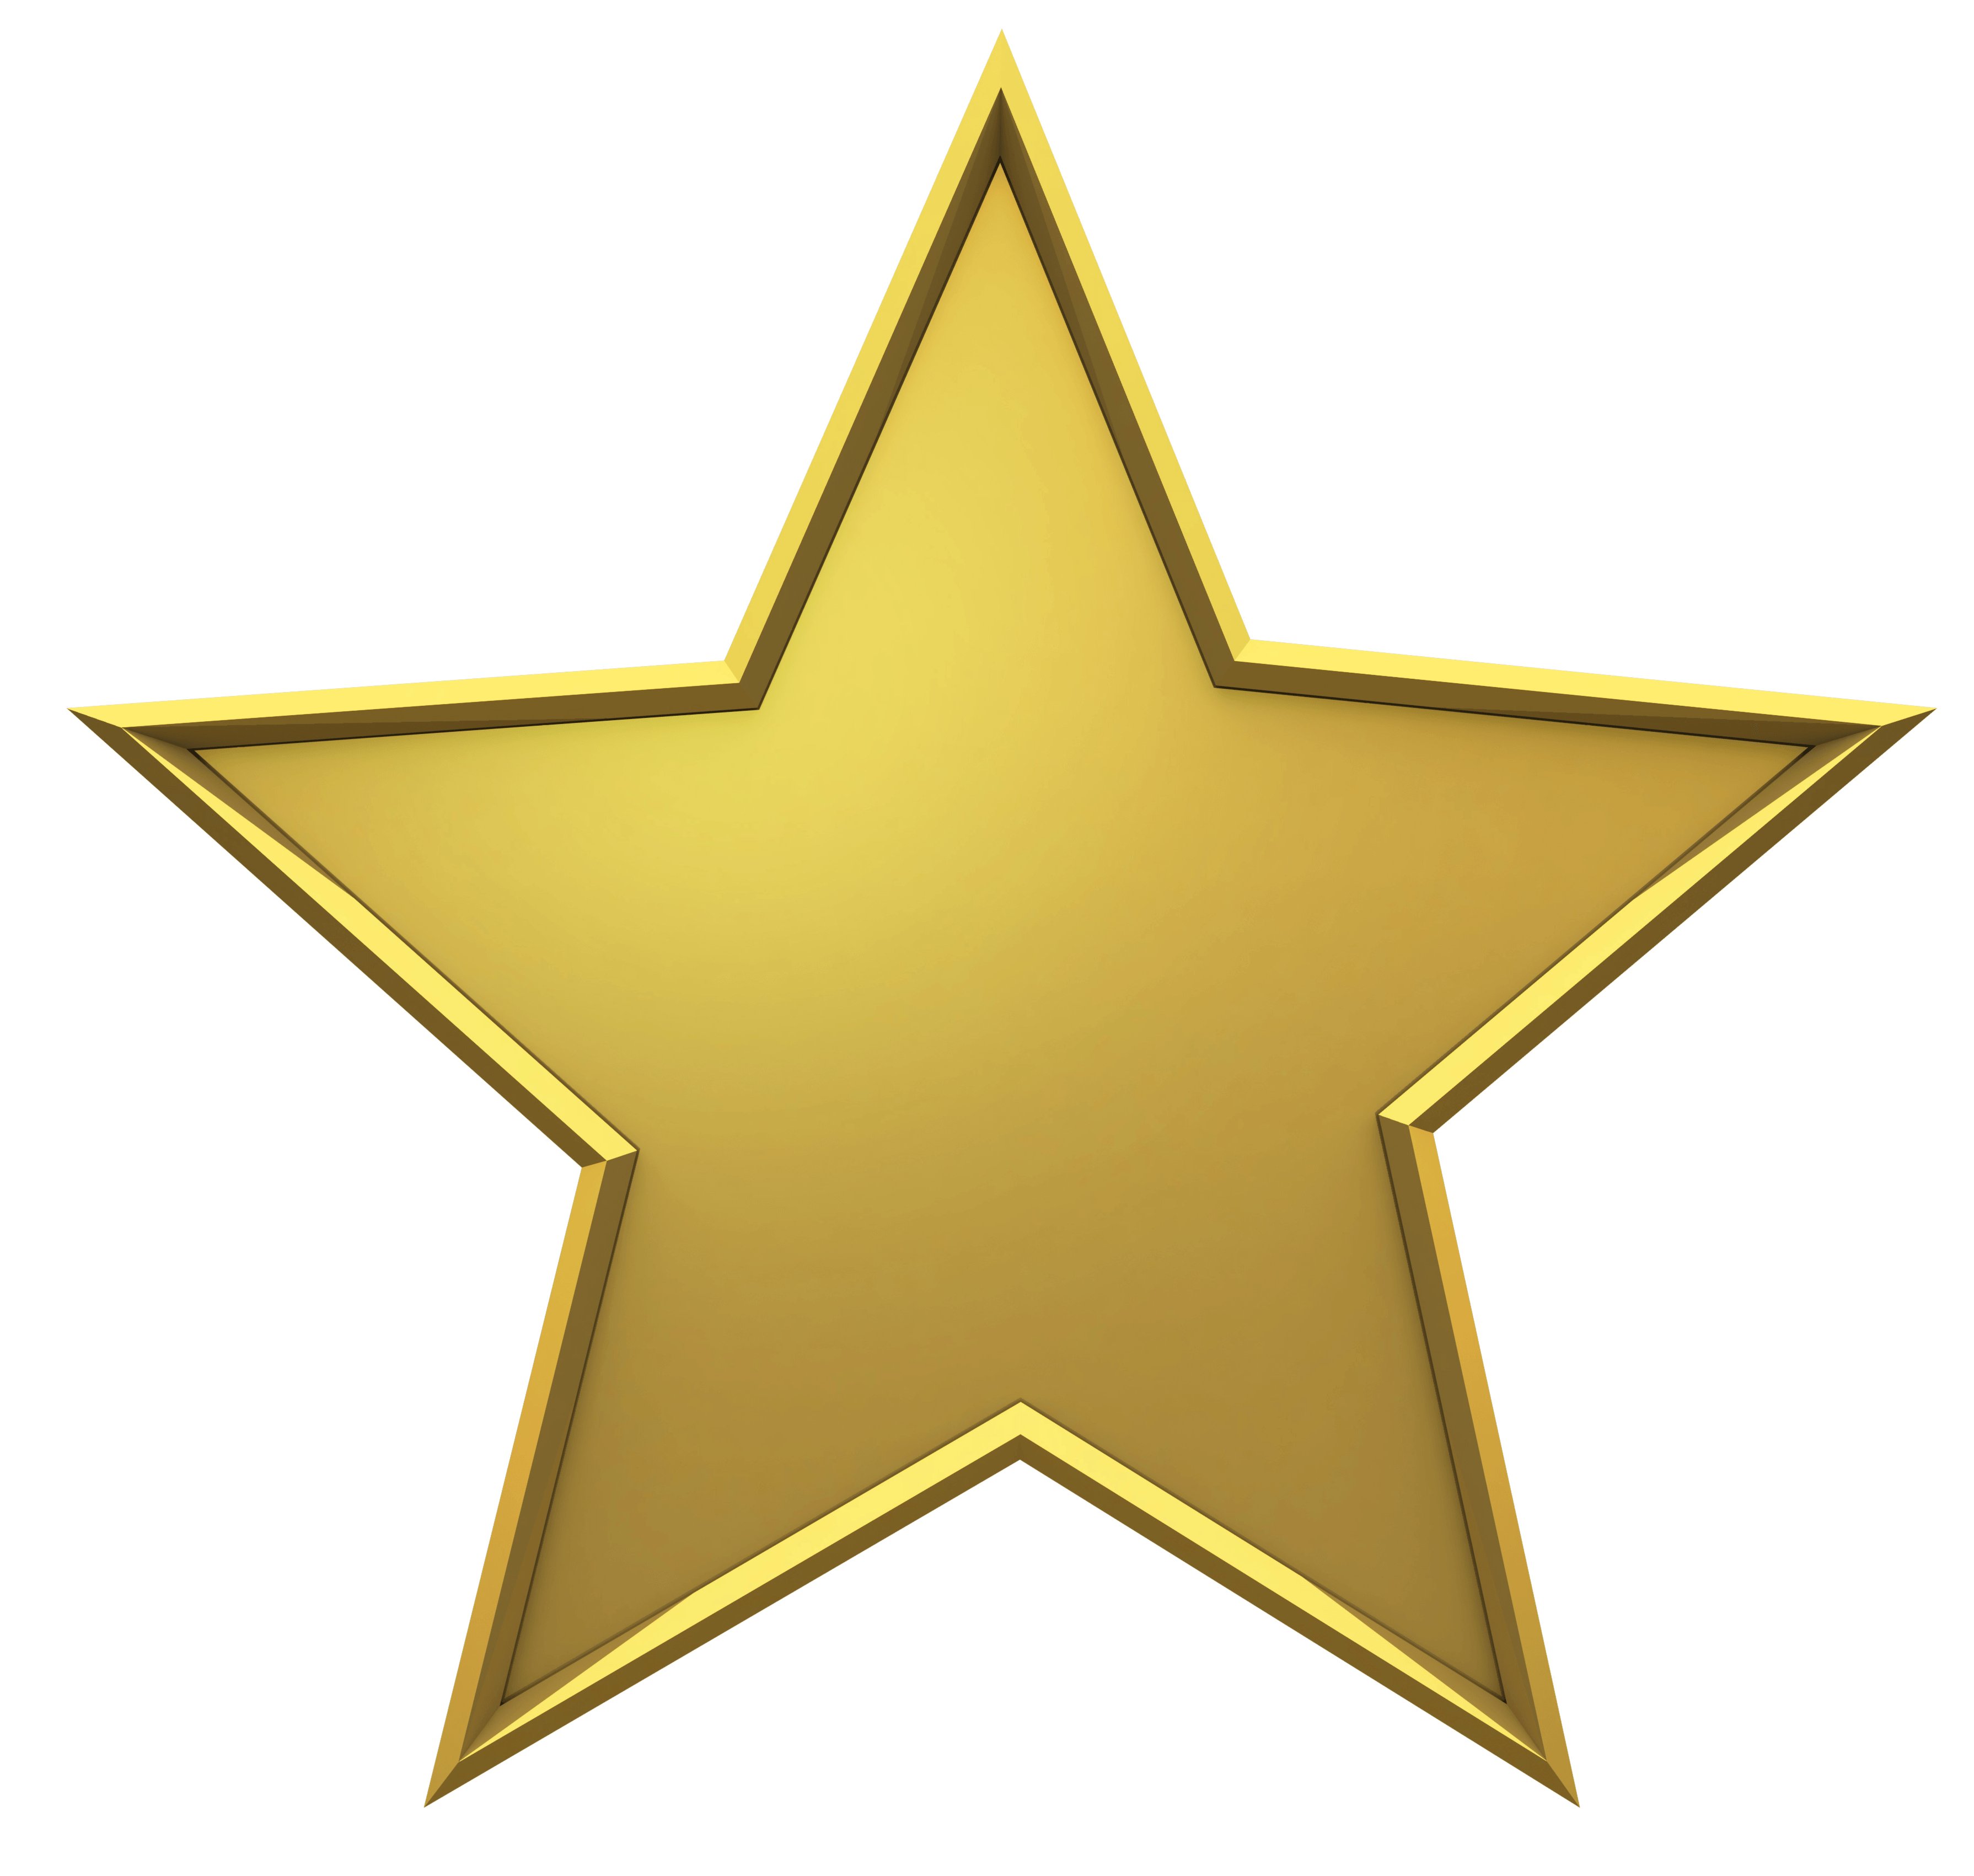 Yellow Star PNG Image.